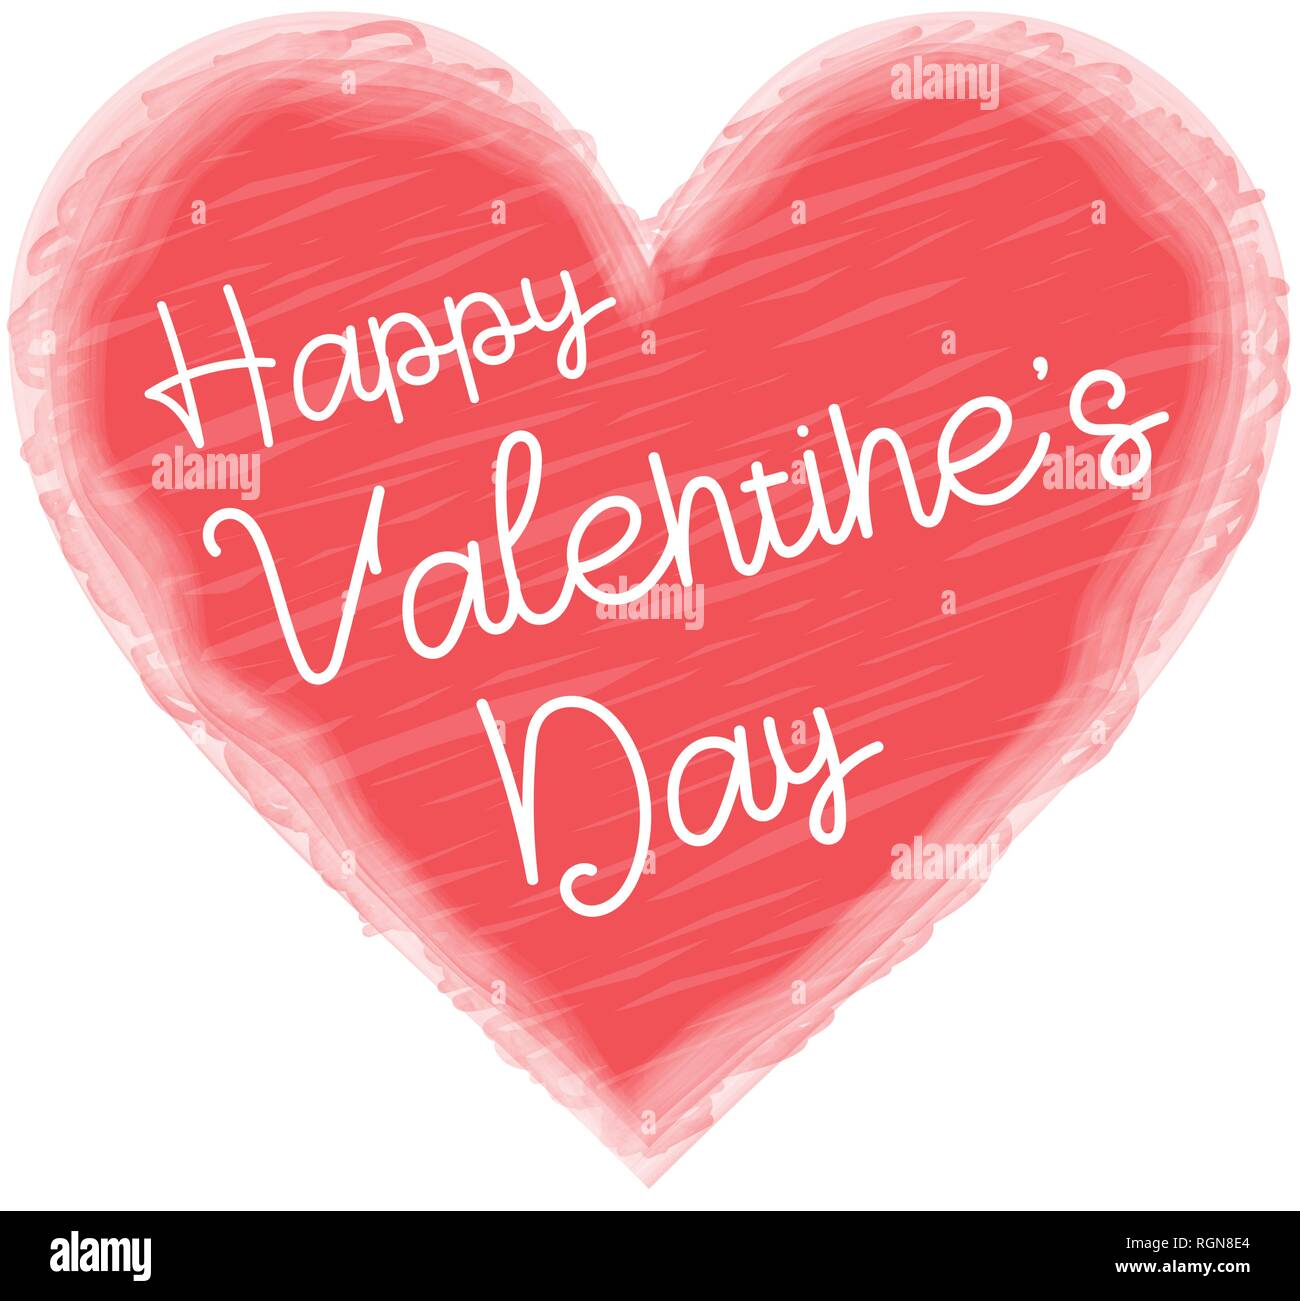 Happy Valentine S Day Greeting Card Template With Typography Text In Red Heart Shape With Lettering Isolated On White Background Stock Vector Image Art Alamy